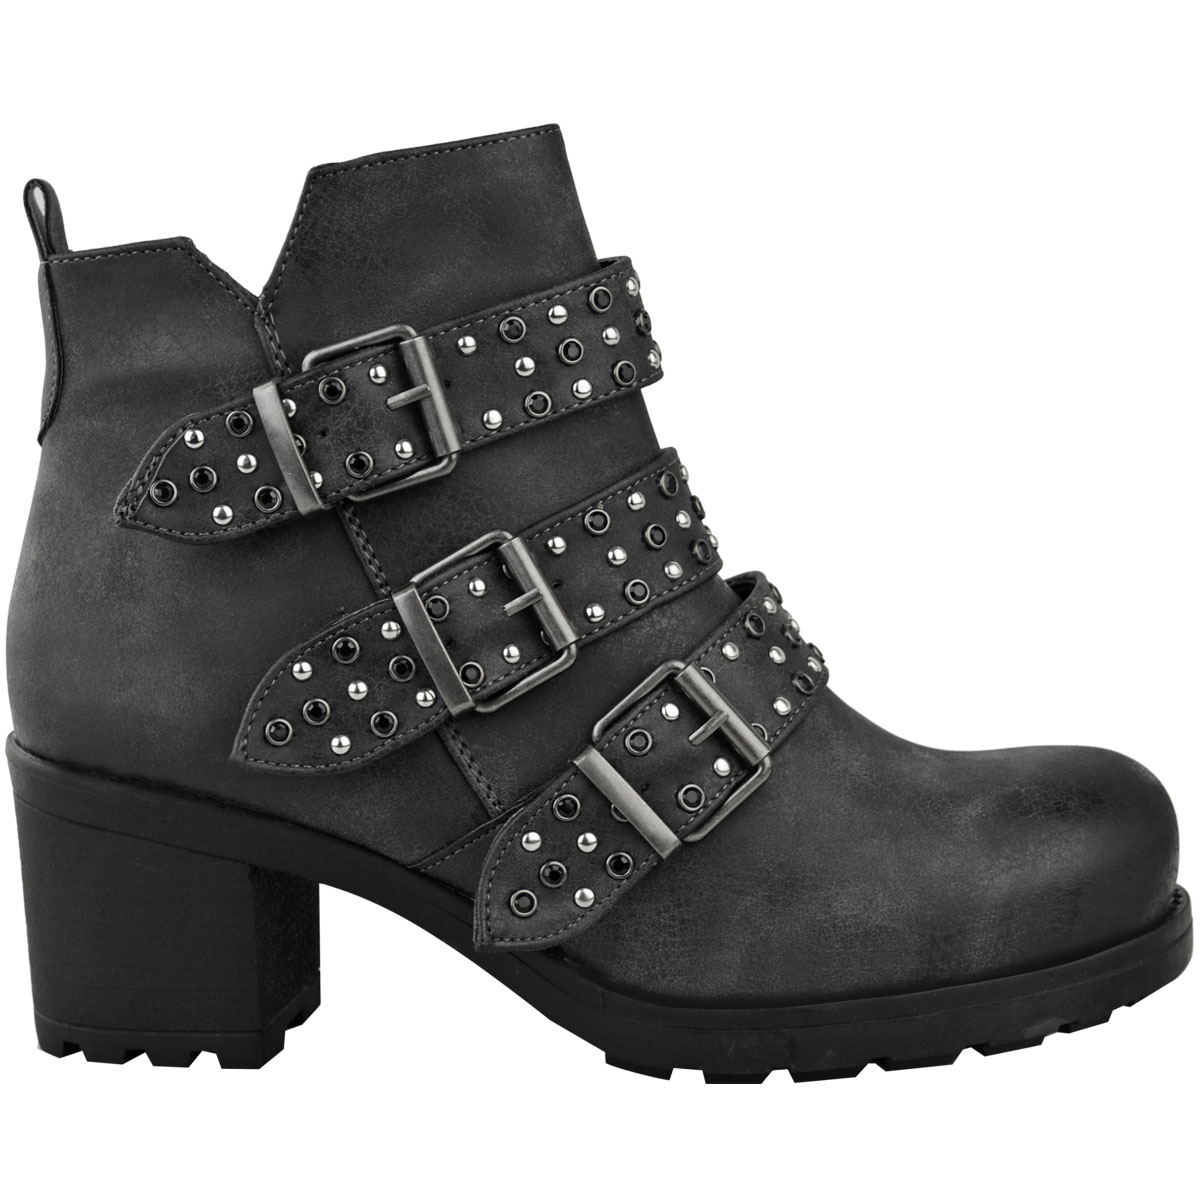 f2bbe98e11c8 Womens Ladies Studded Flat Ankle Boots Spikes Biker Punk Chunky ...